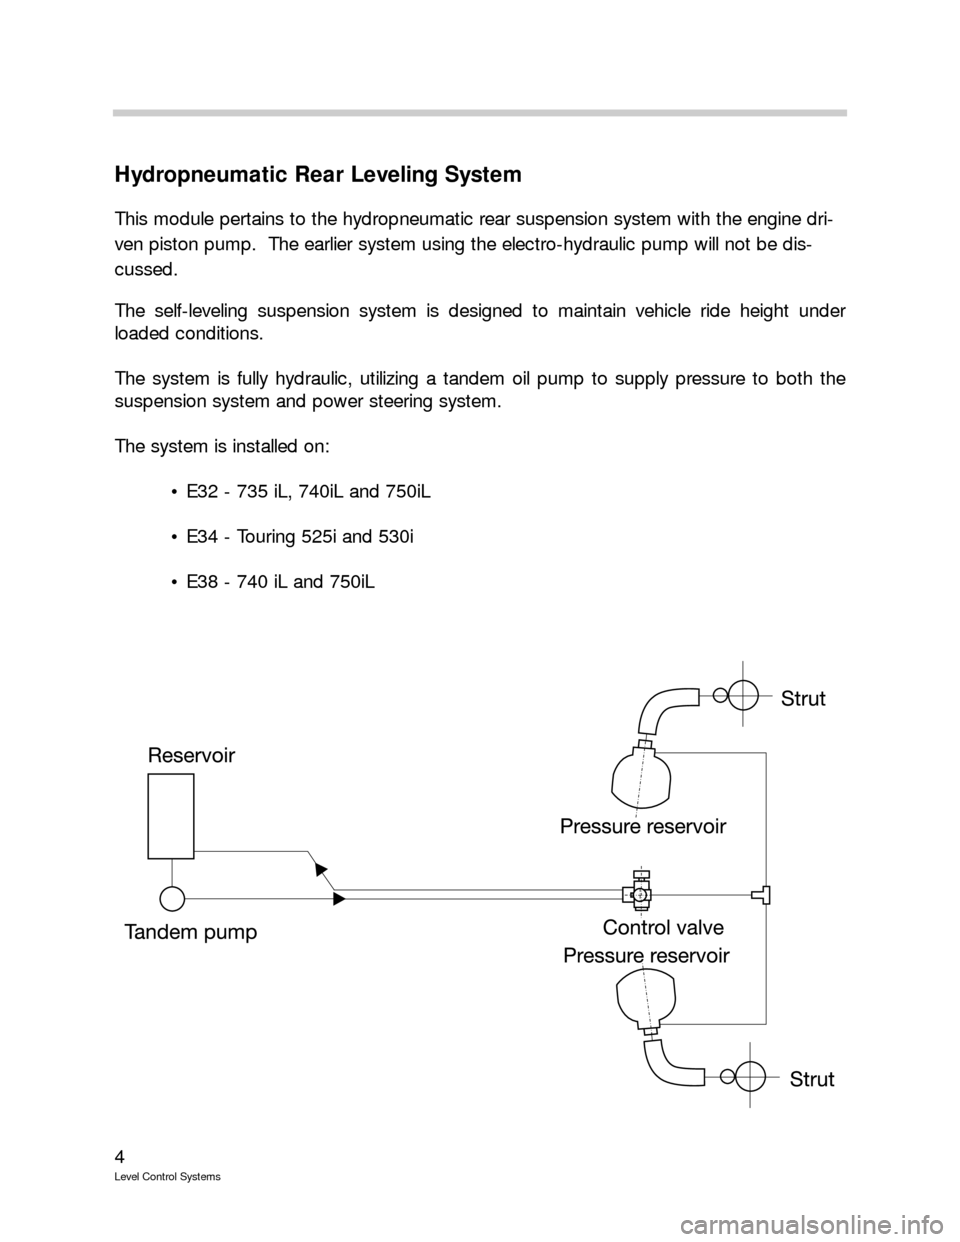 BMW 525I TOURING 1989 E34 Level Control System Manual, Page 4